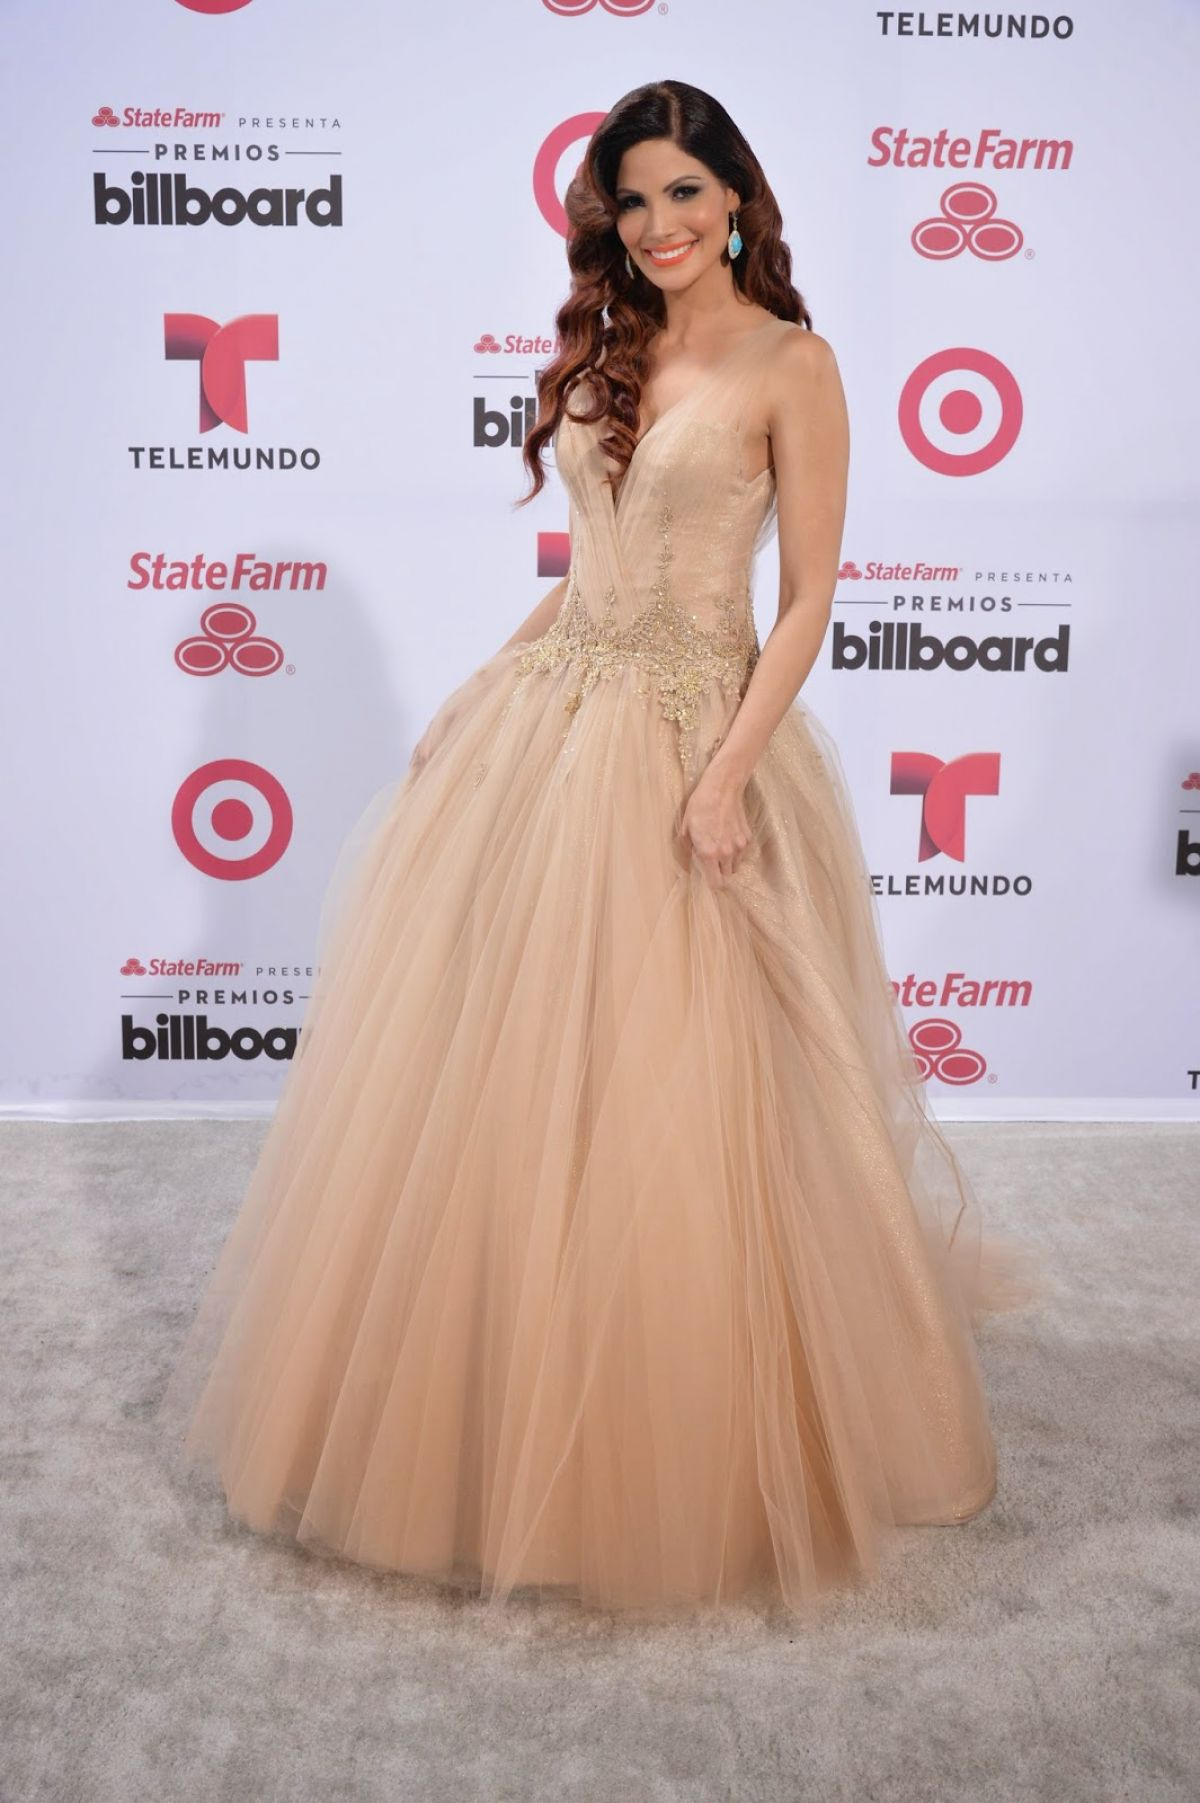 CYNTHIA OLAVARRIA at 2015 Billboard Latin Music Awards in Miami